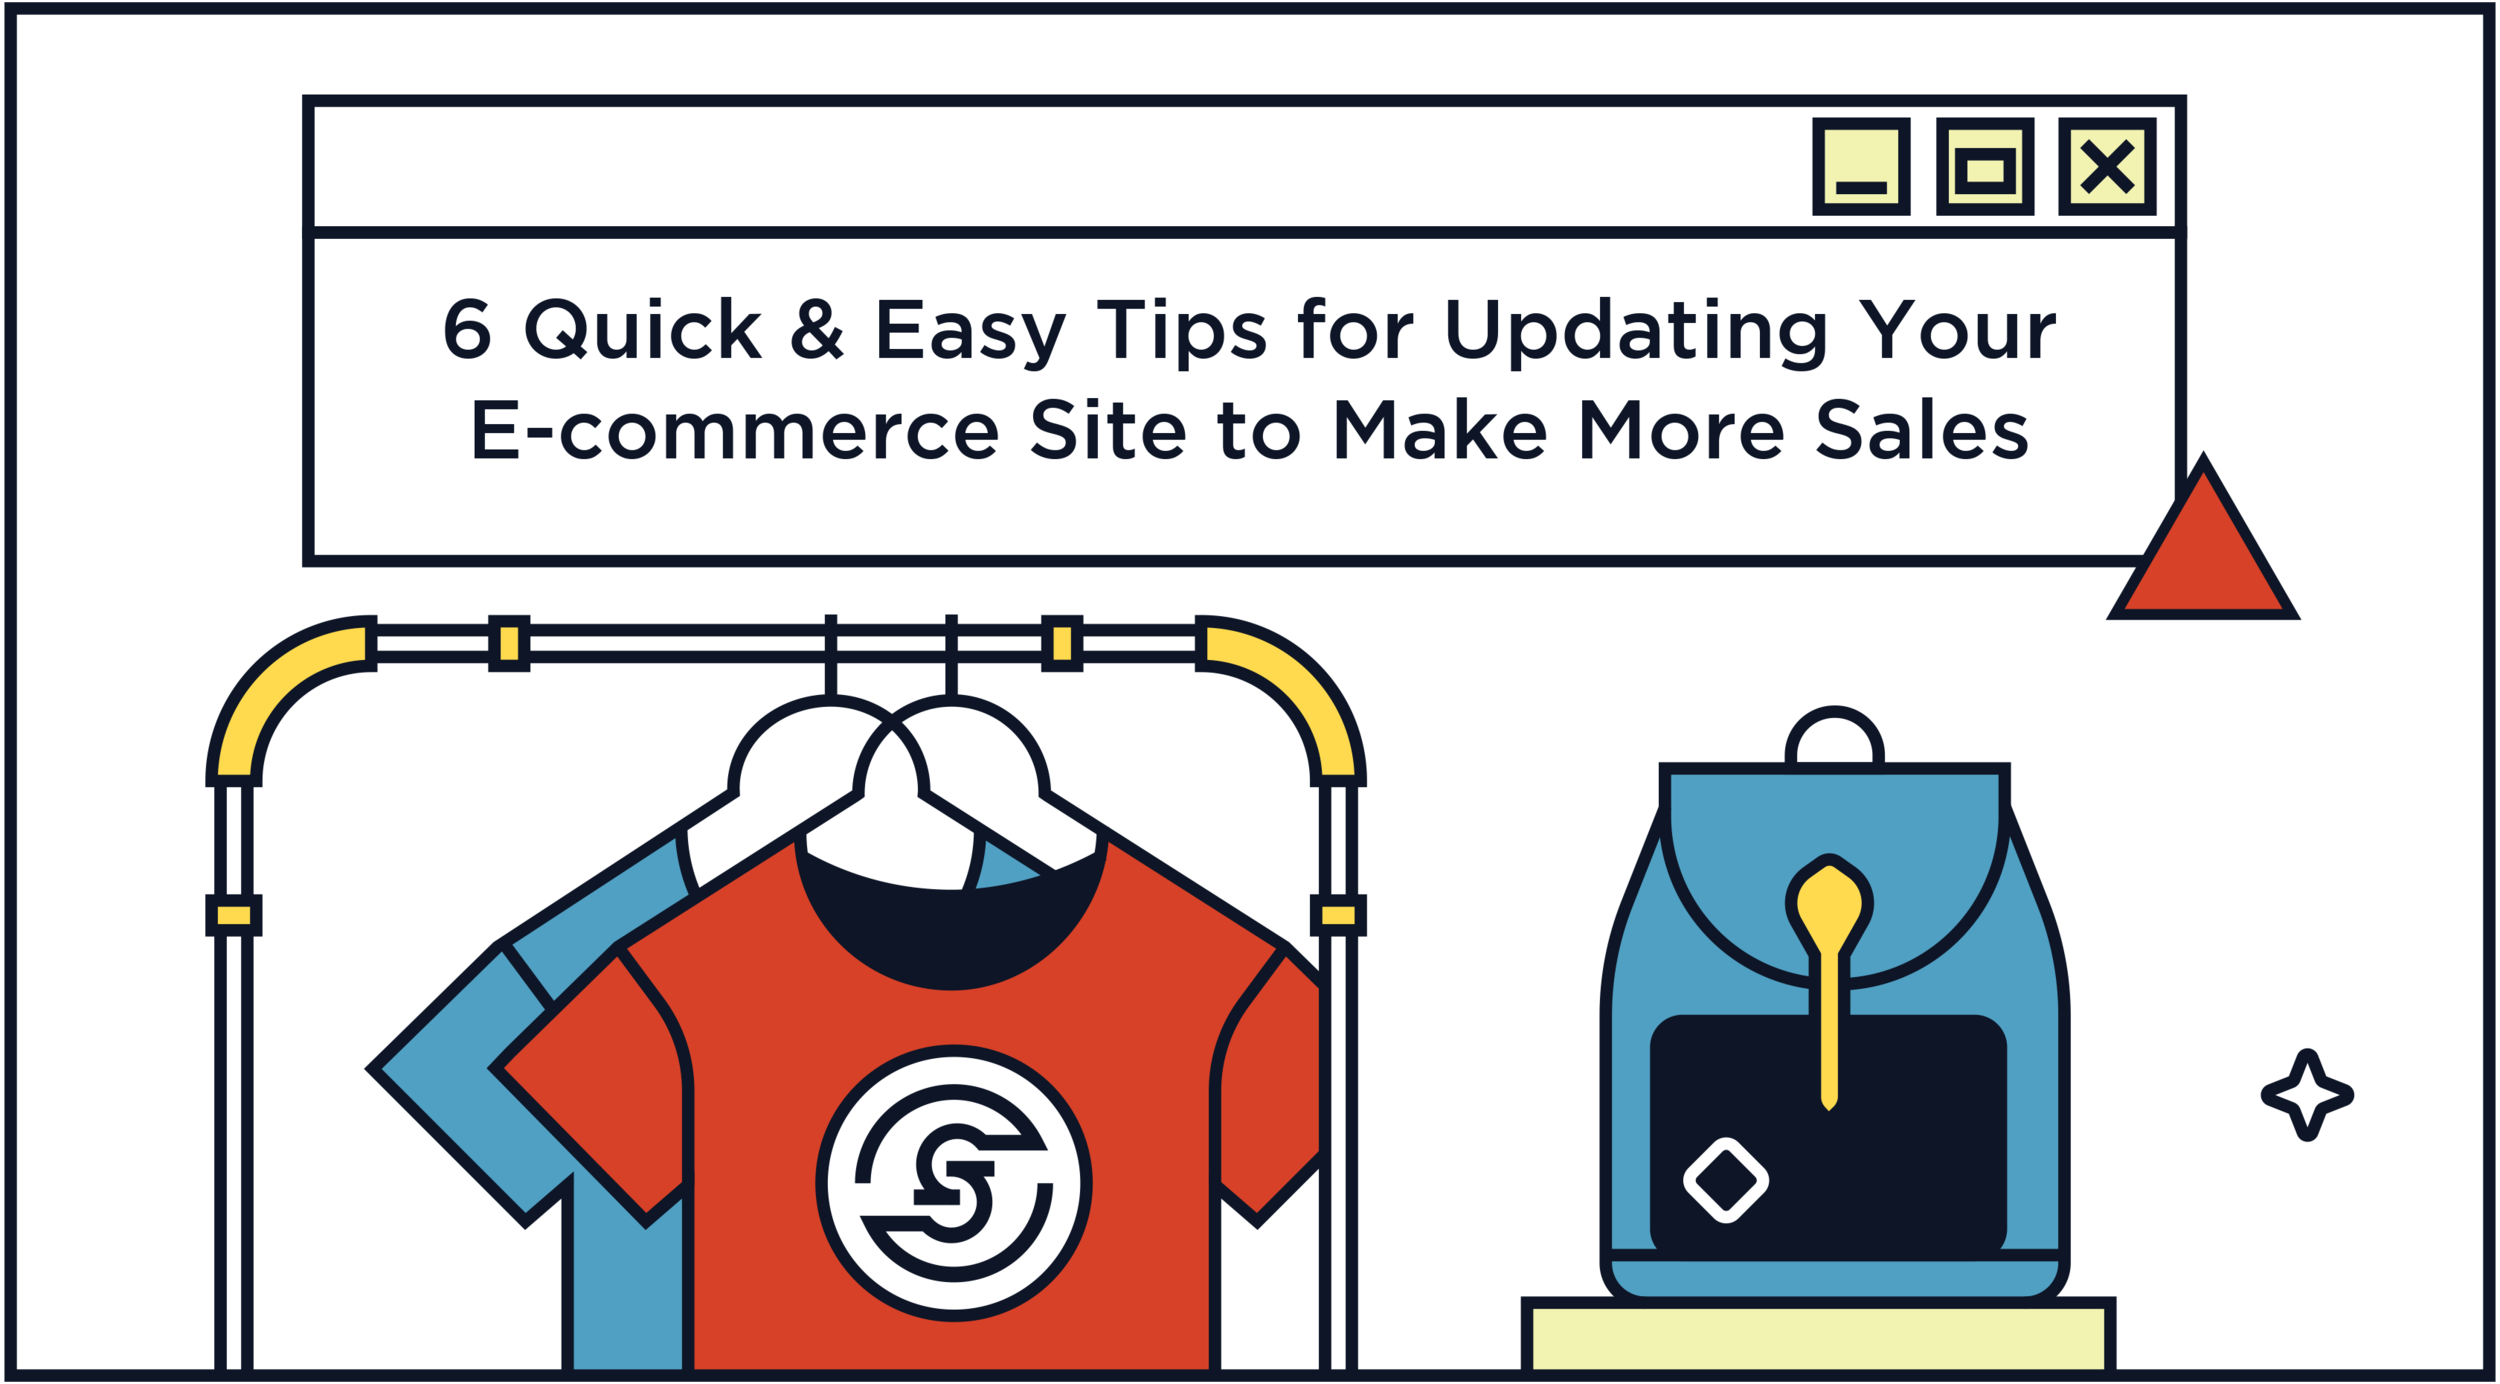 Jan 28 - Simple Ways to Update Your Online Store in the New Year_9.png